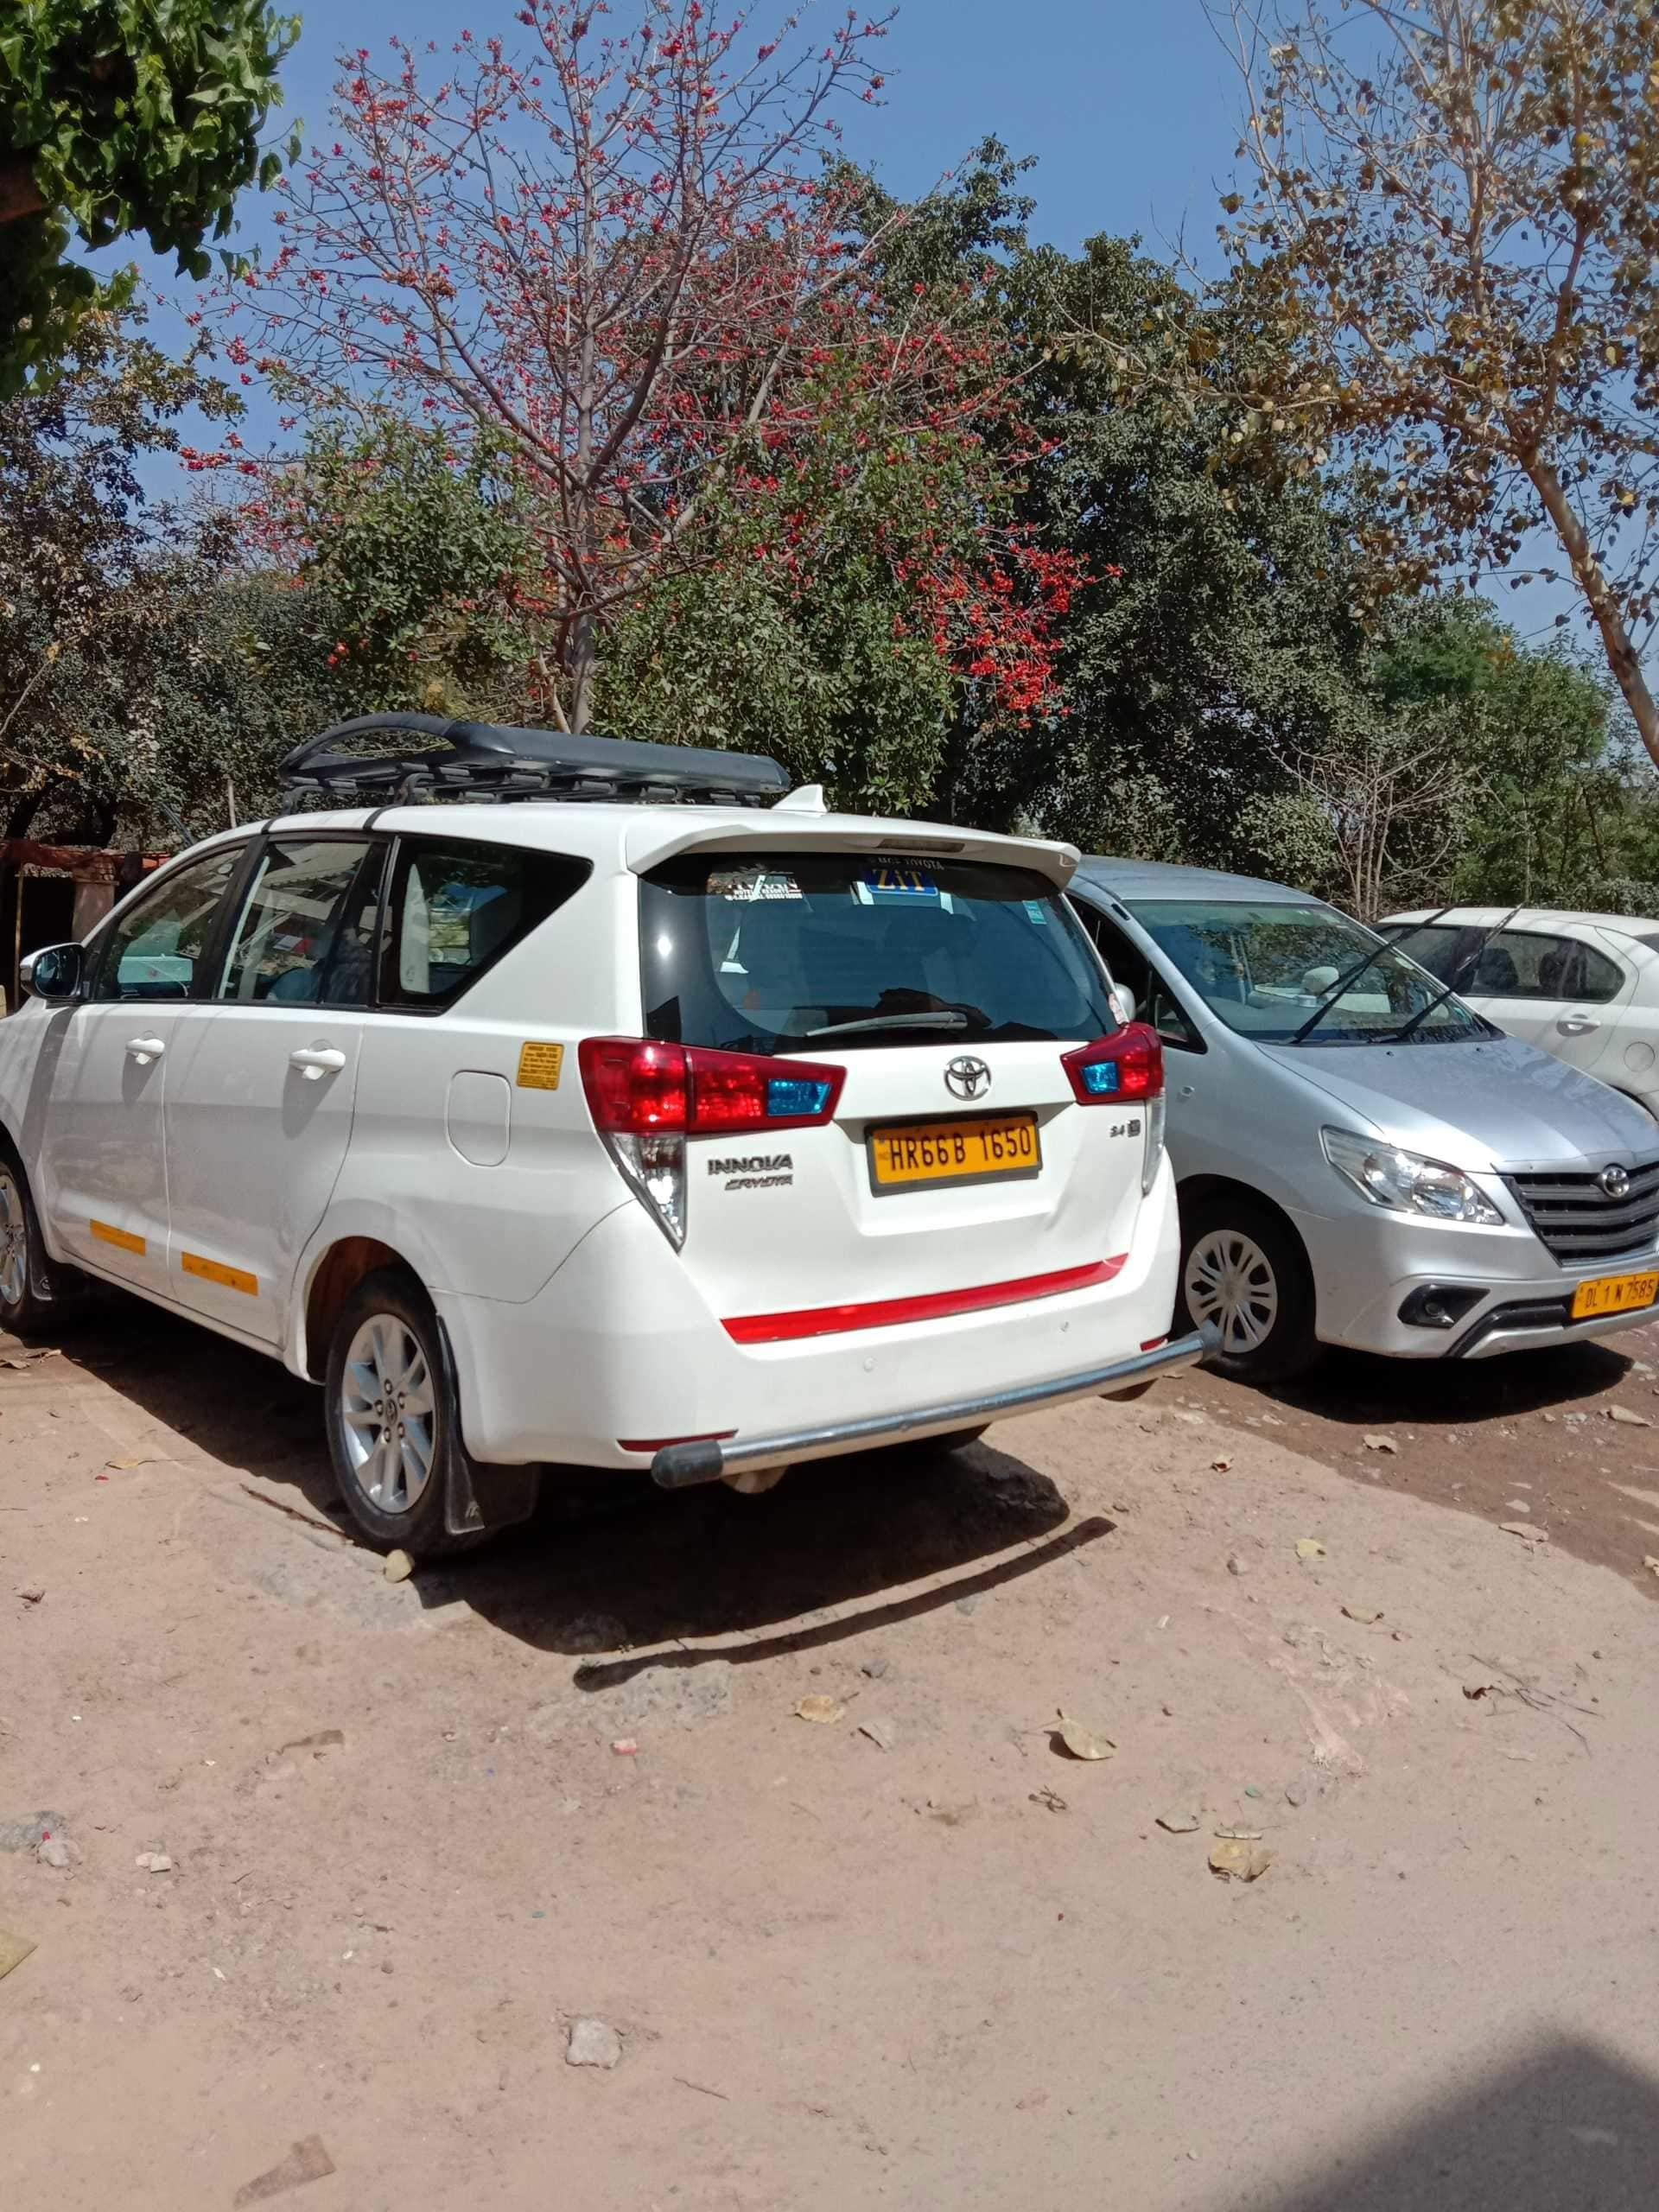 Top 100 24 Hours Car Hire In Gurgaon Sector 49 Best 24 Hours Car